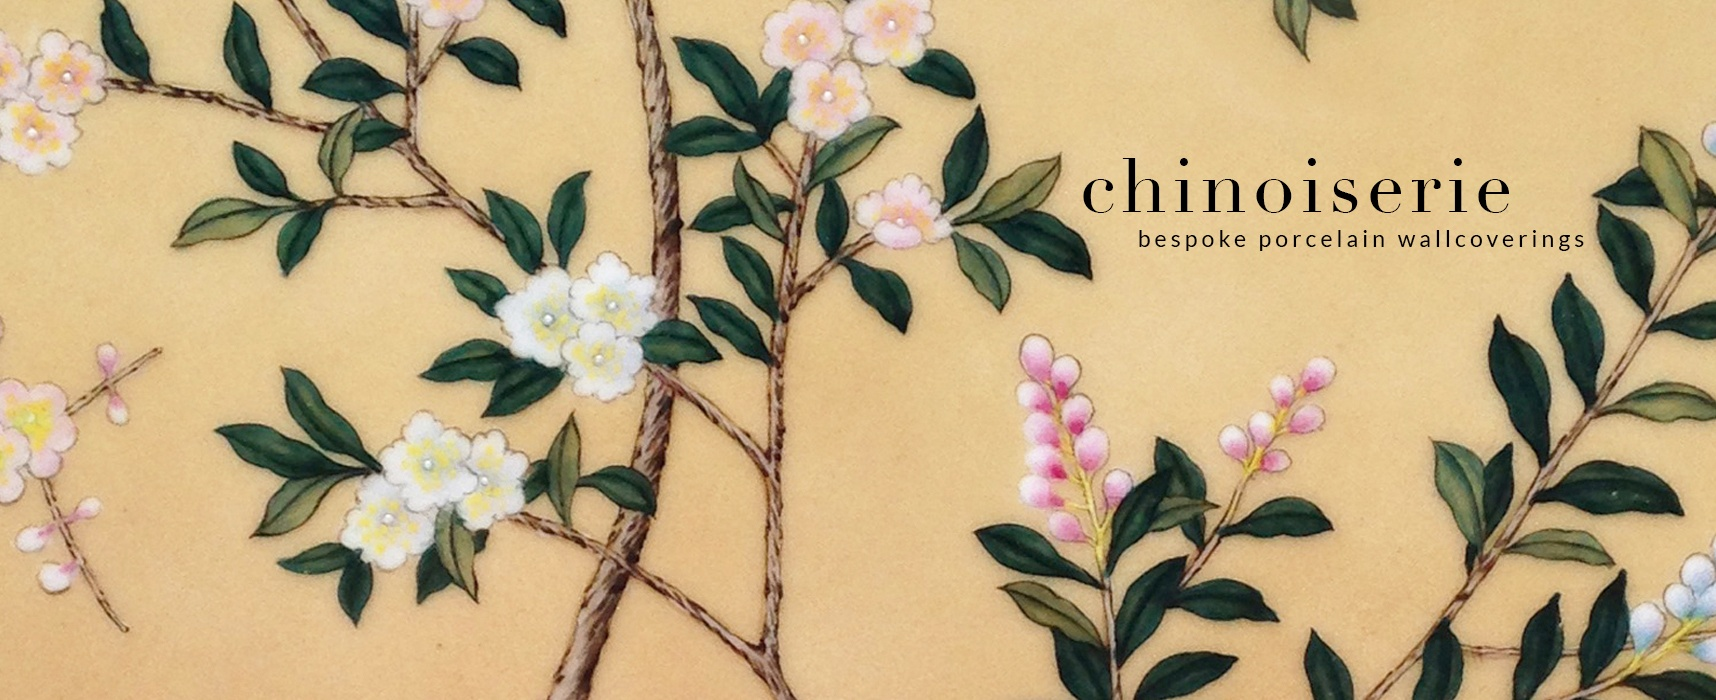 cle_chinoiserie_header_FNL2